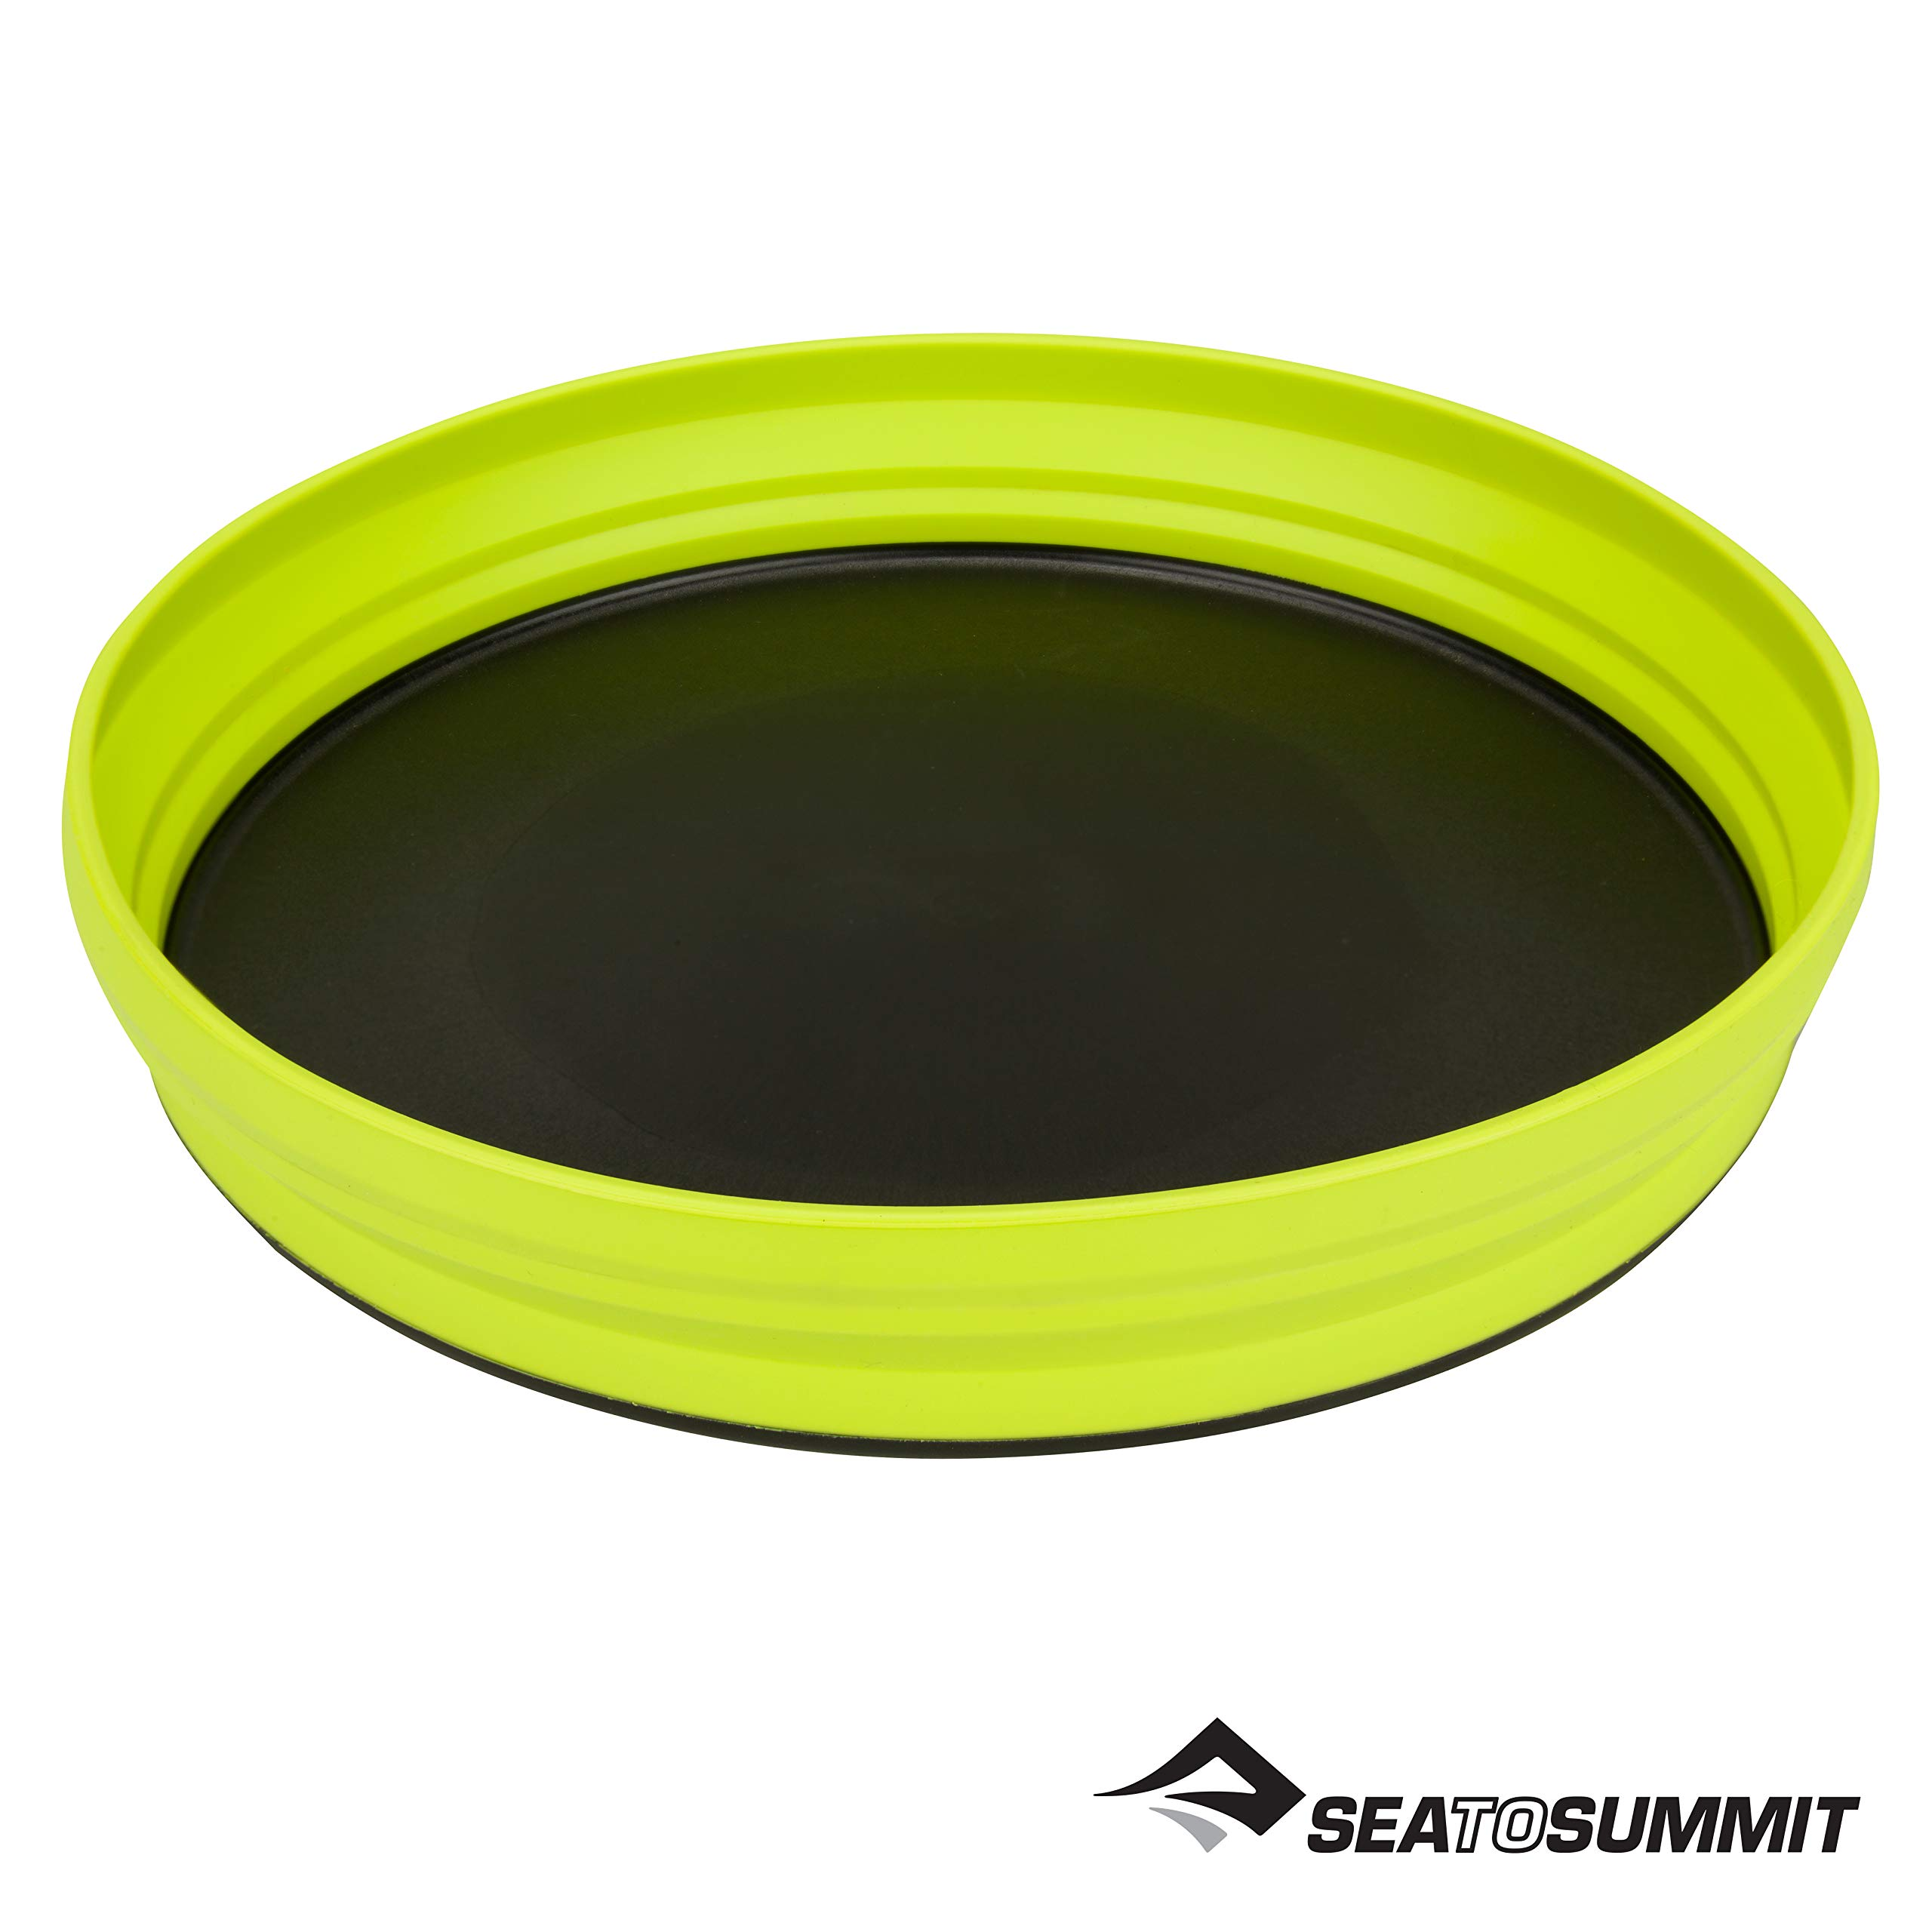 Sea to Summit X-Plate, Lime by Sea to Summit